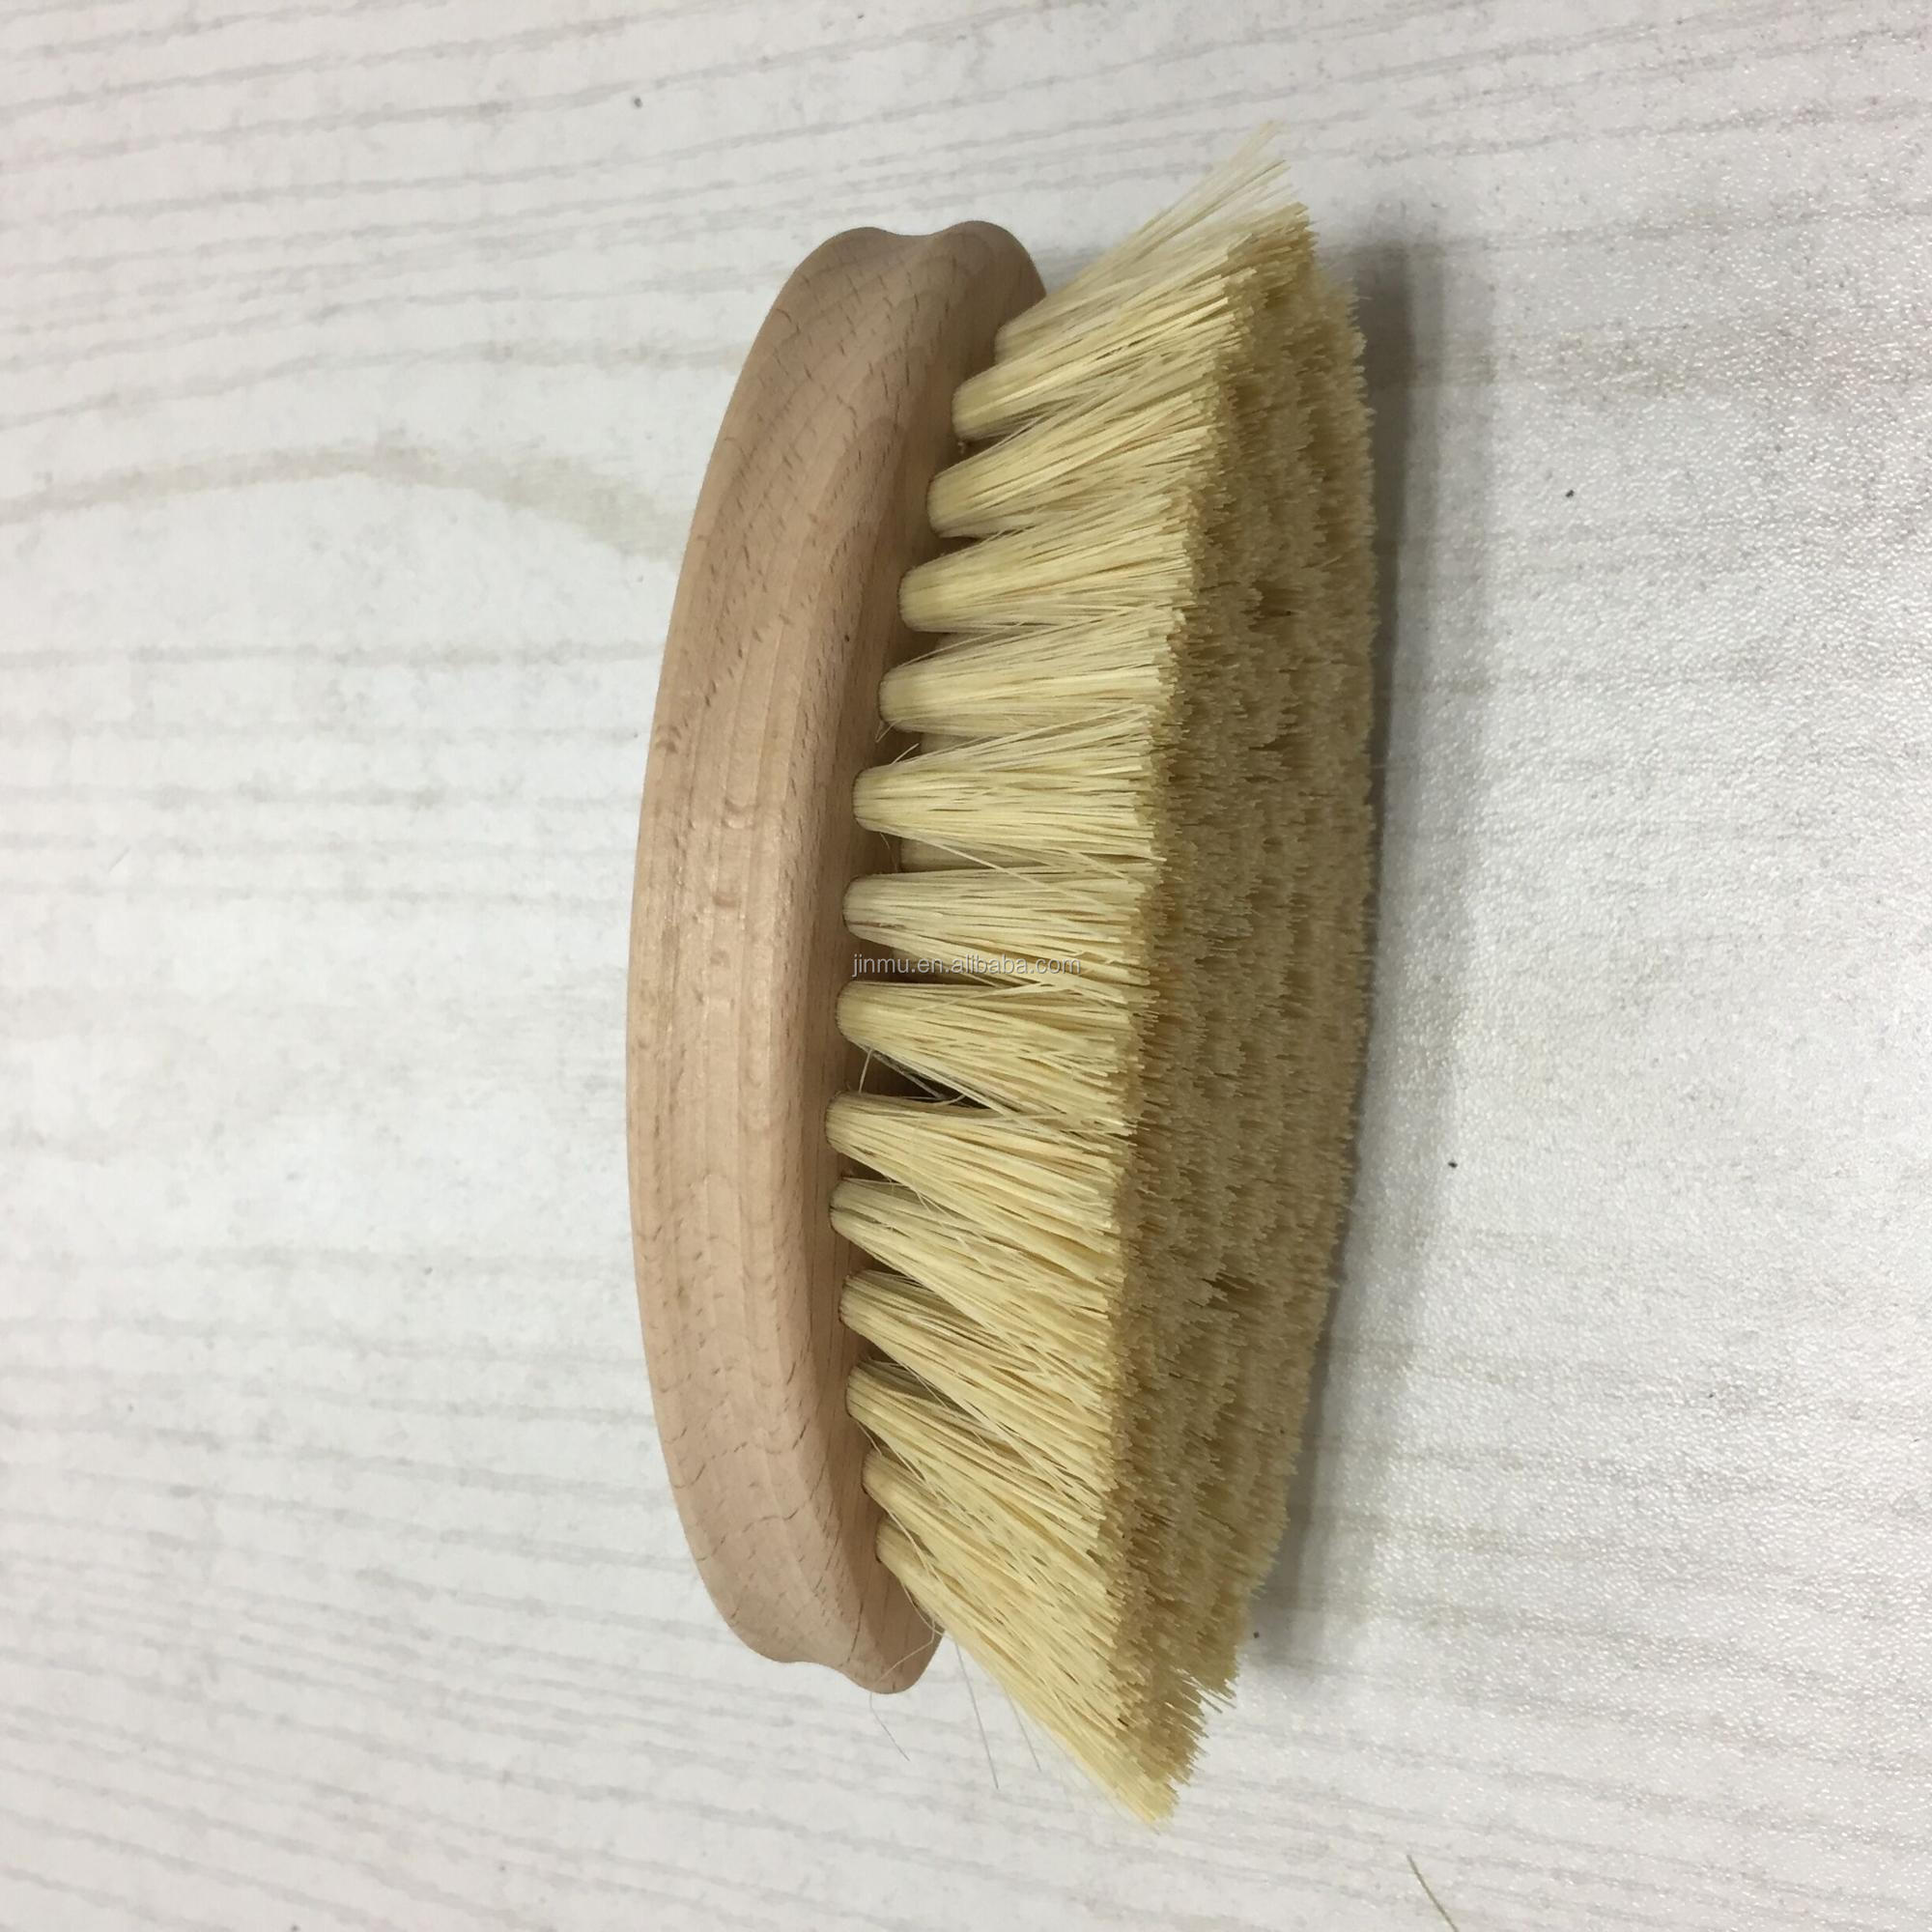 Shoe or Boot Shine Brush, Boots cleaning brushes